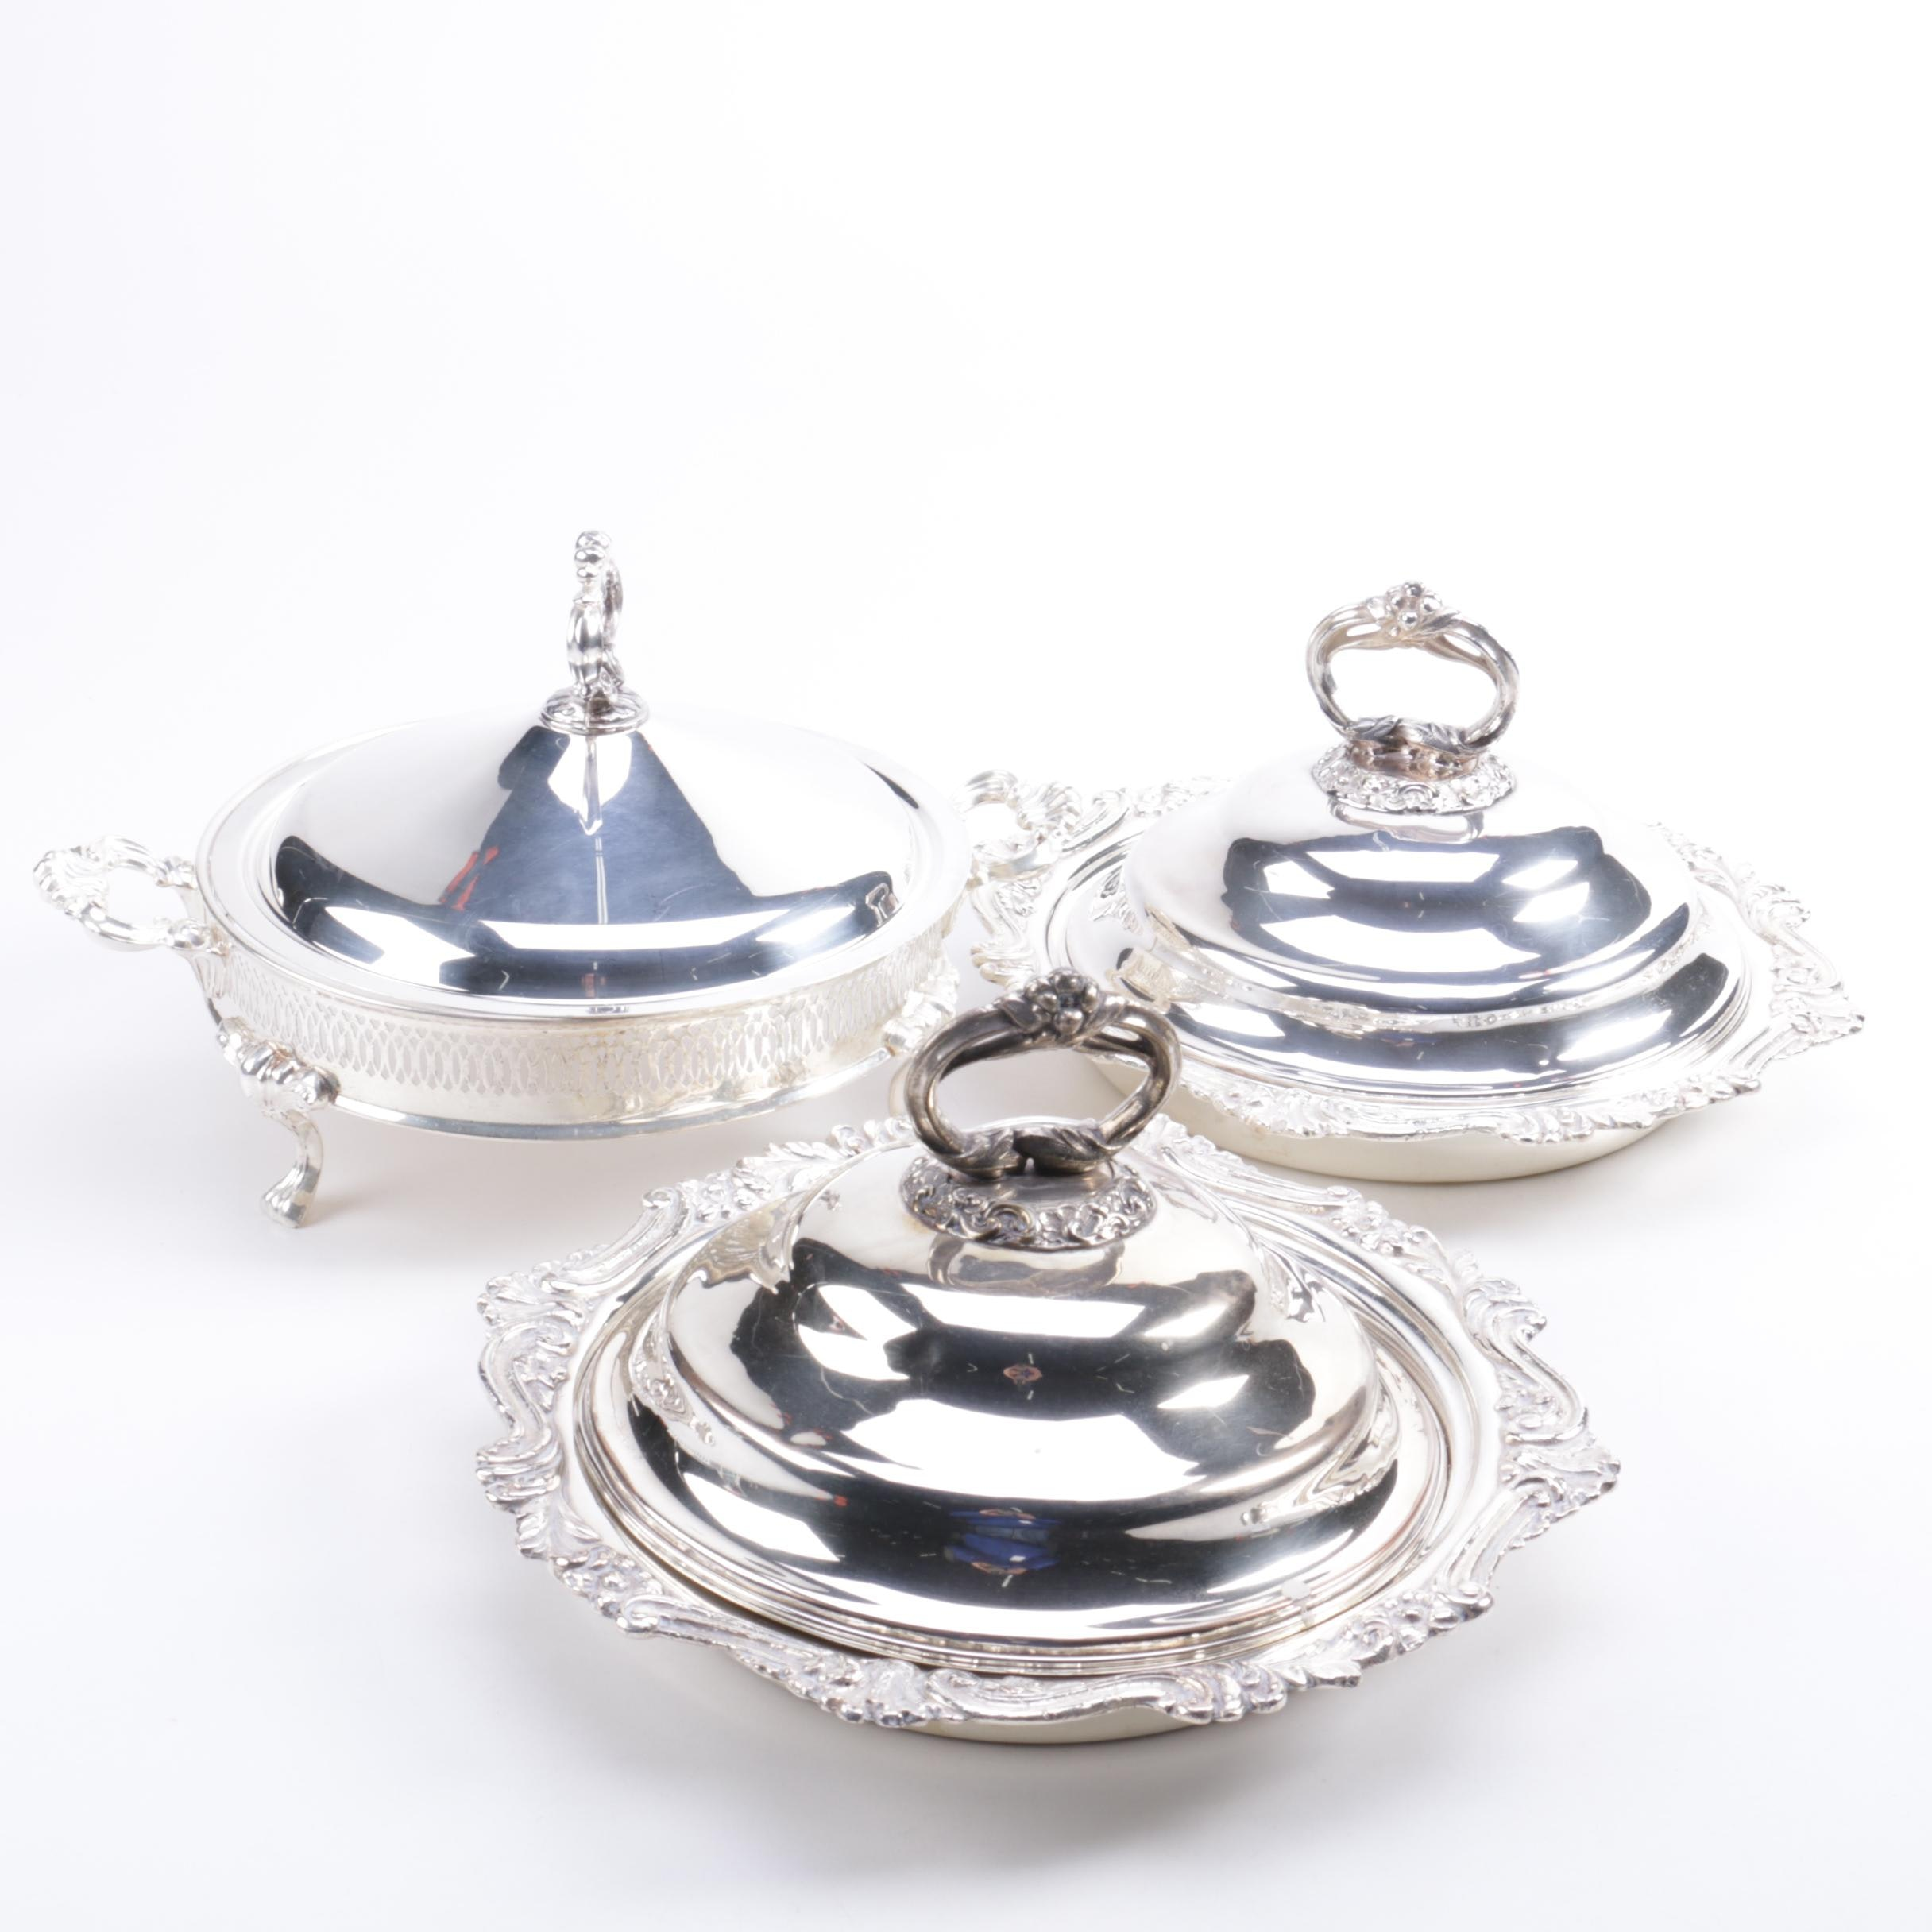 Silver-Plated Lidded Serving Dishes